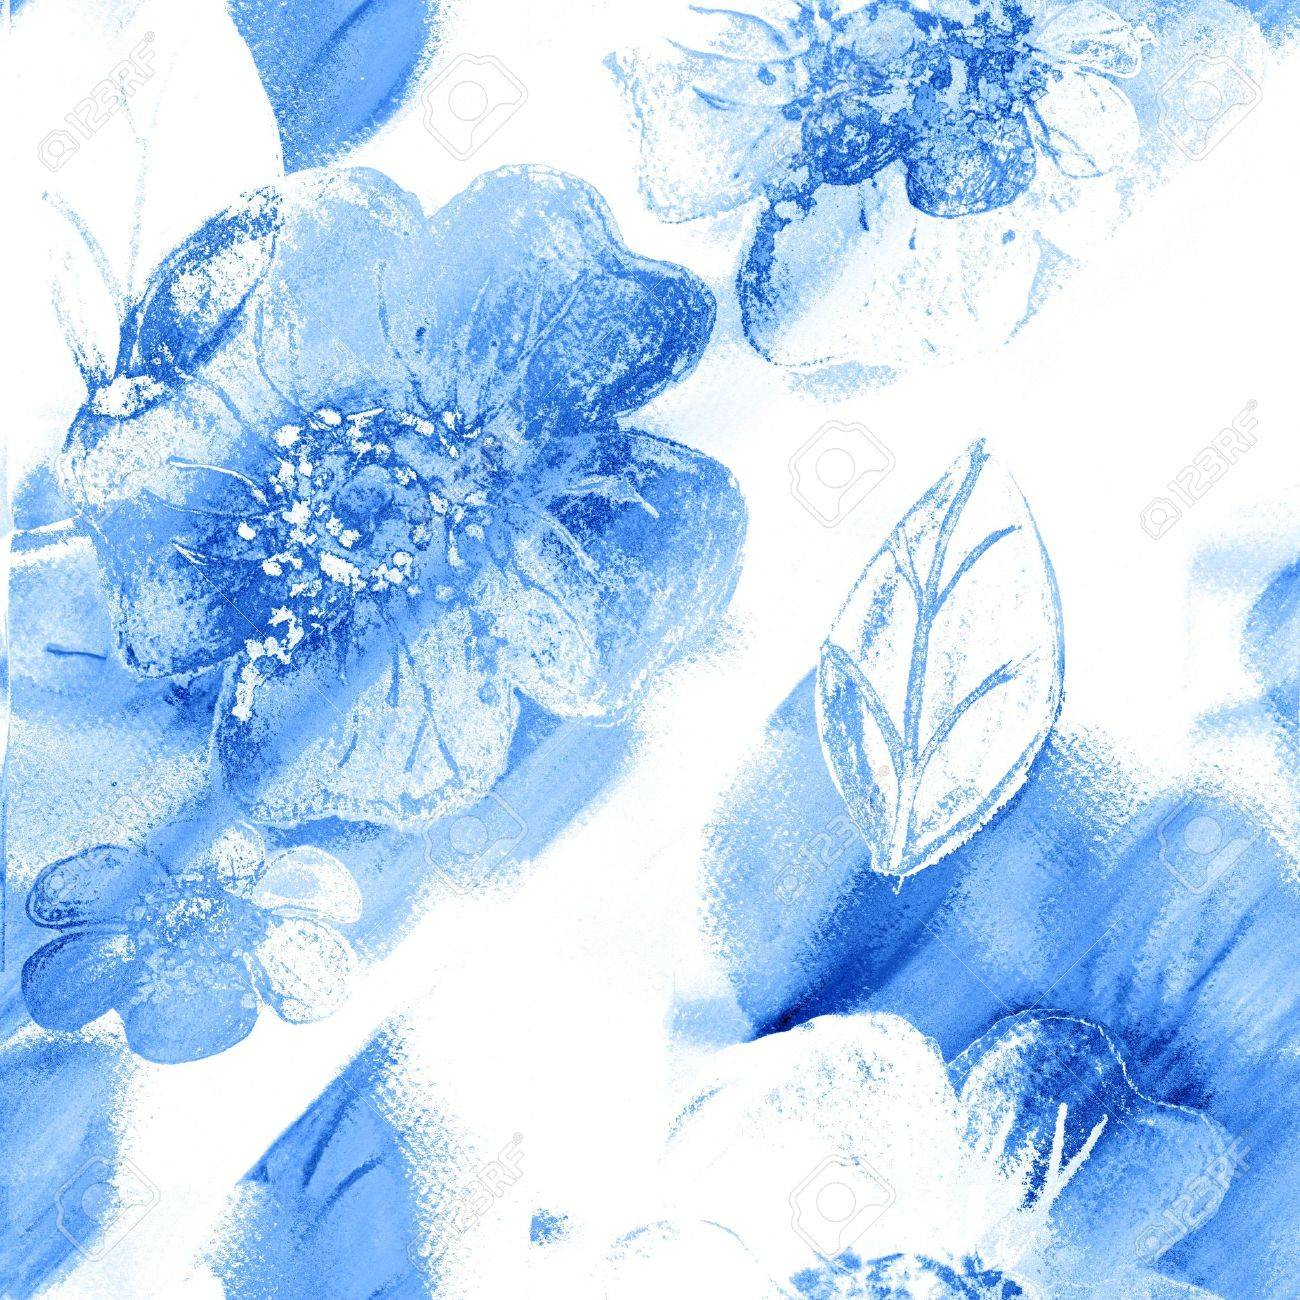 Seamless Floral Art Abstract In Blue And White Stock Photo - 8218816